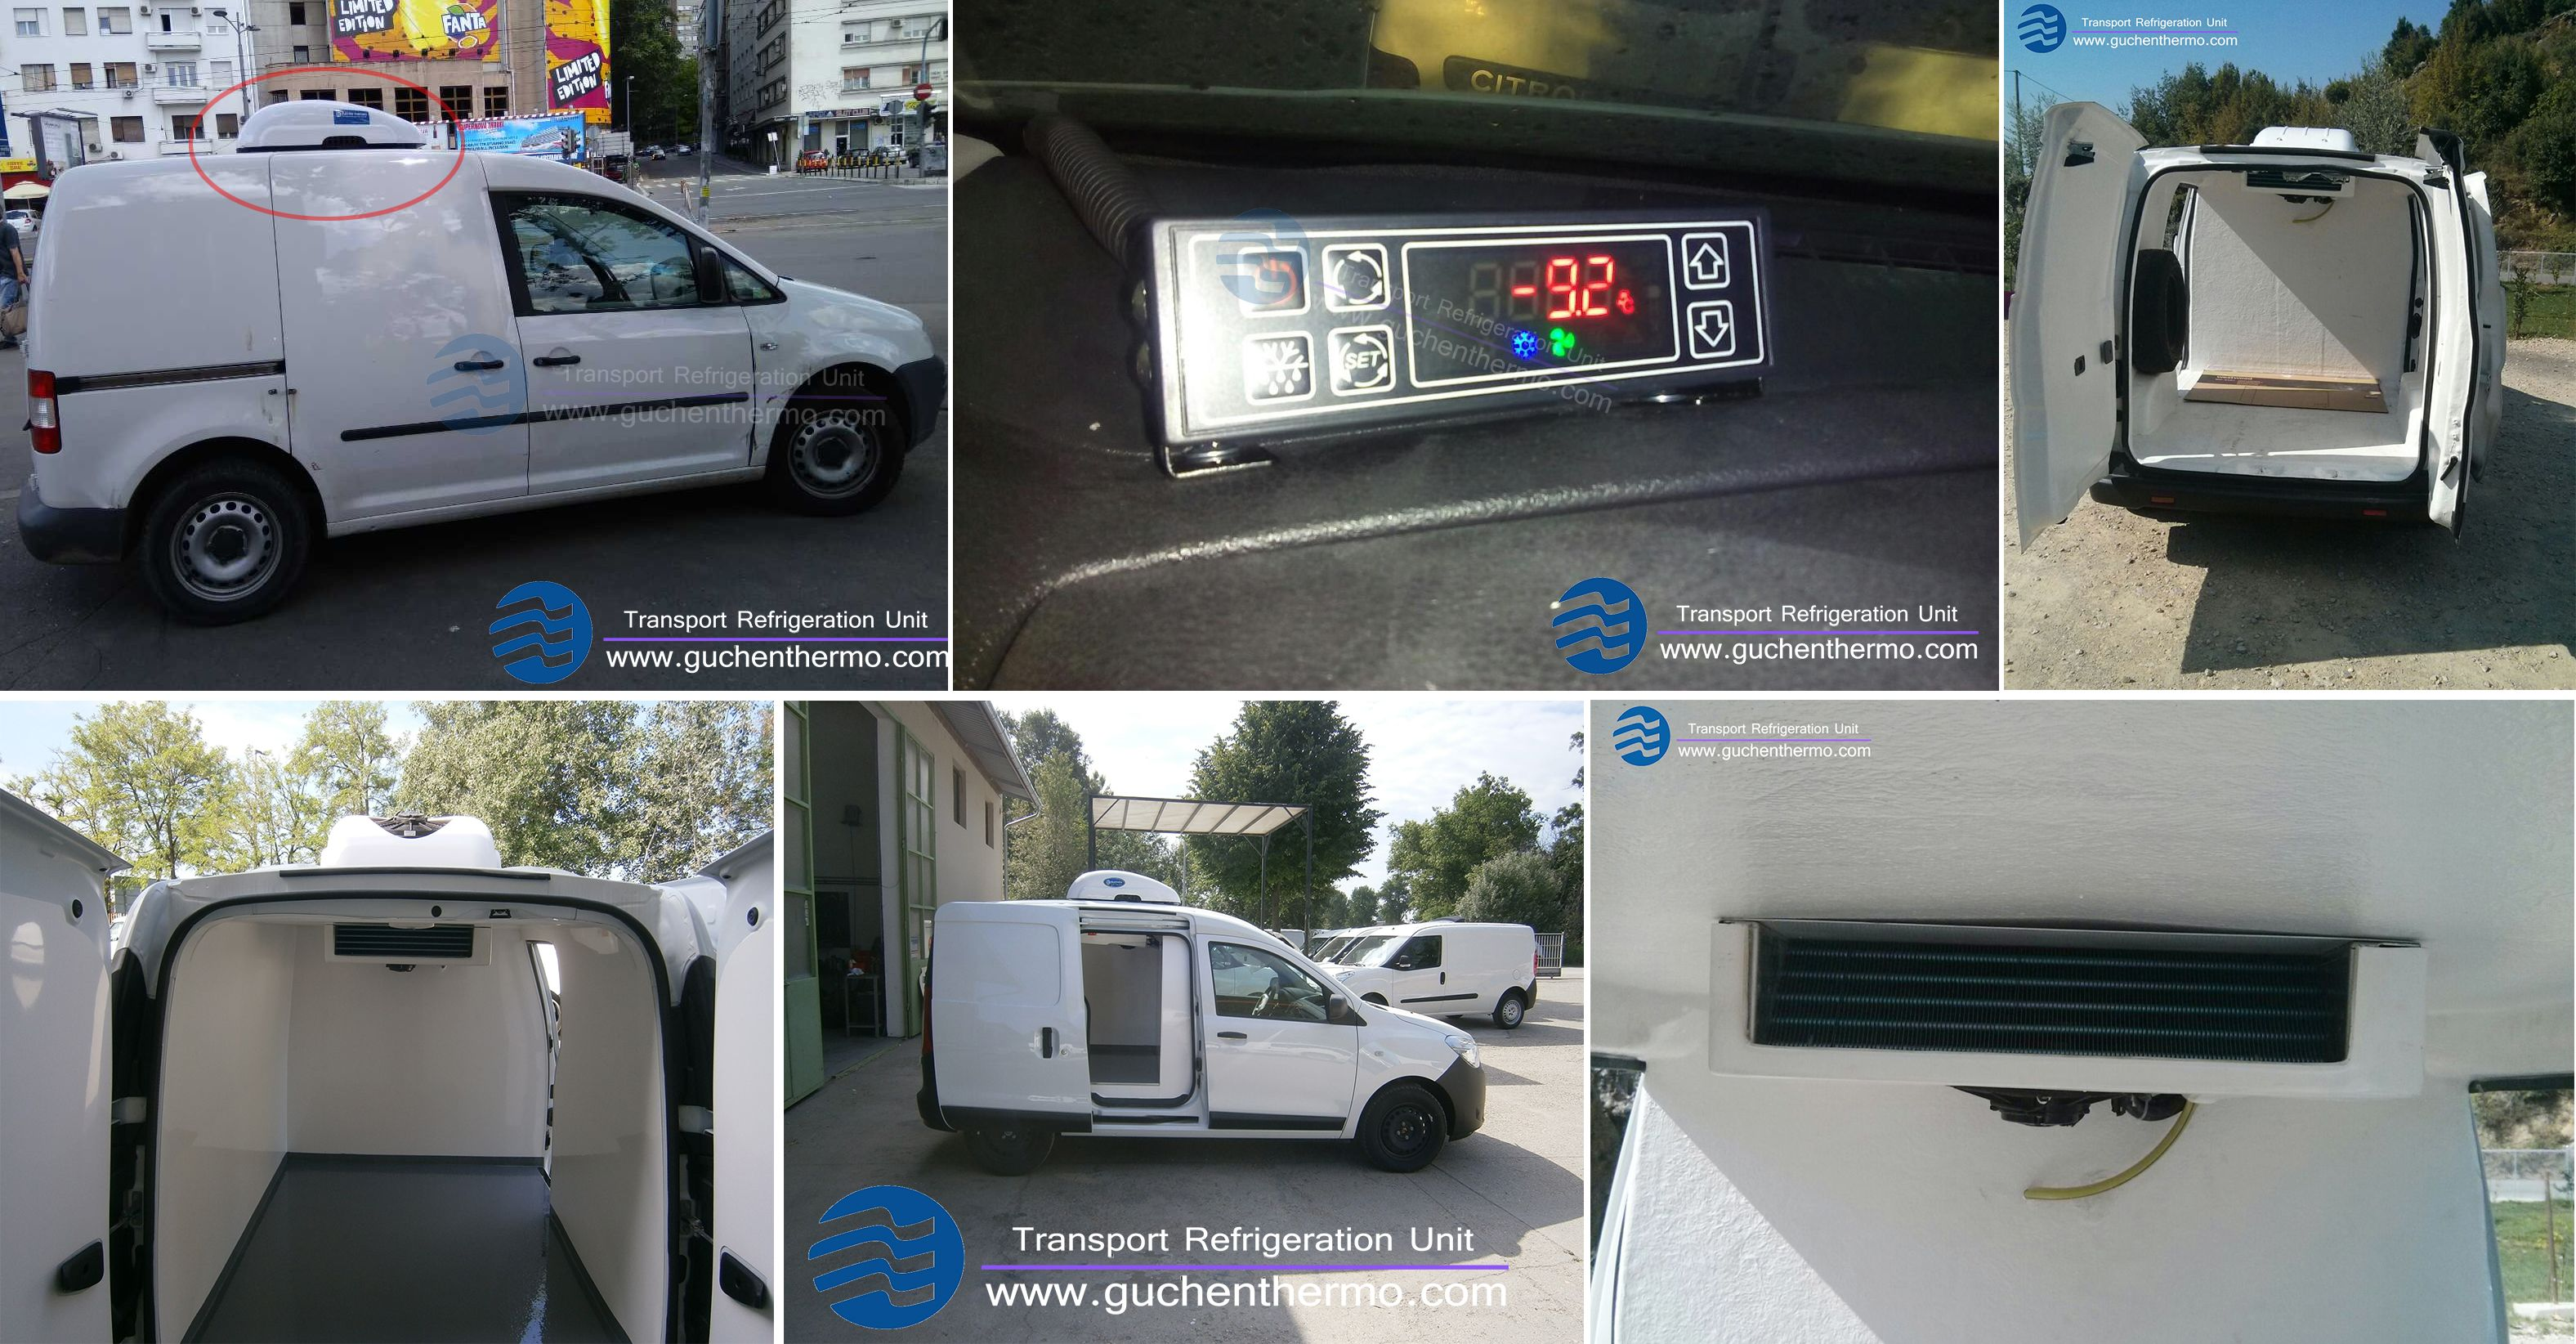 Tr 110d Is Condenser Roof Mounted Van Refrigeration Unit Battery Powered Driven For Fresh Foods Transport Easy To Install And Help You Save Fuel The Unit Van